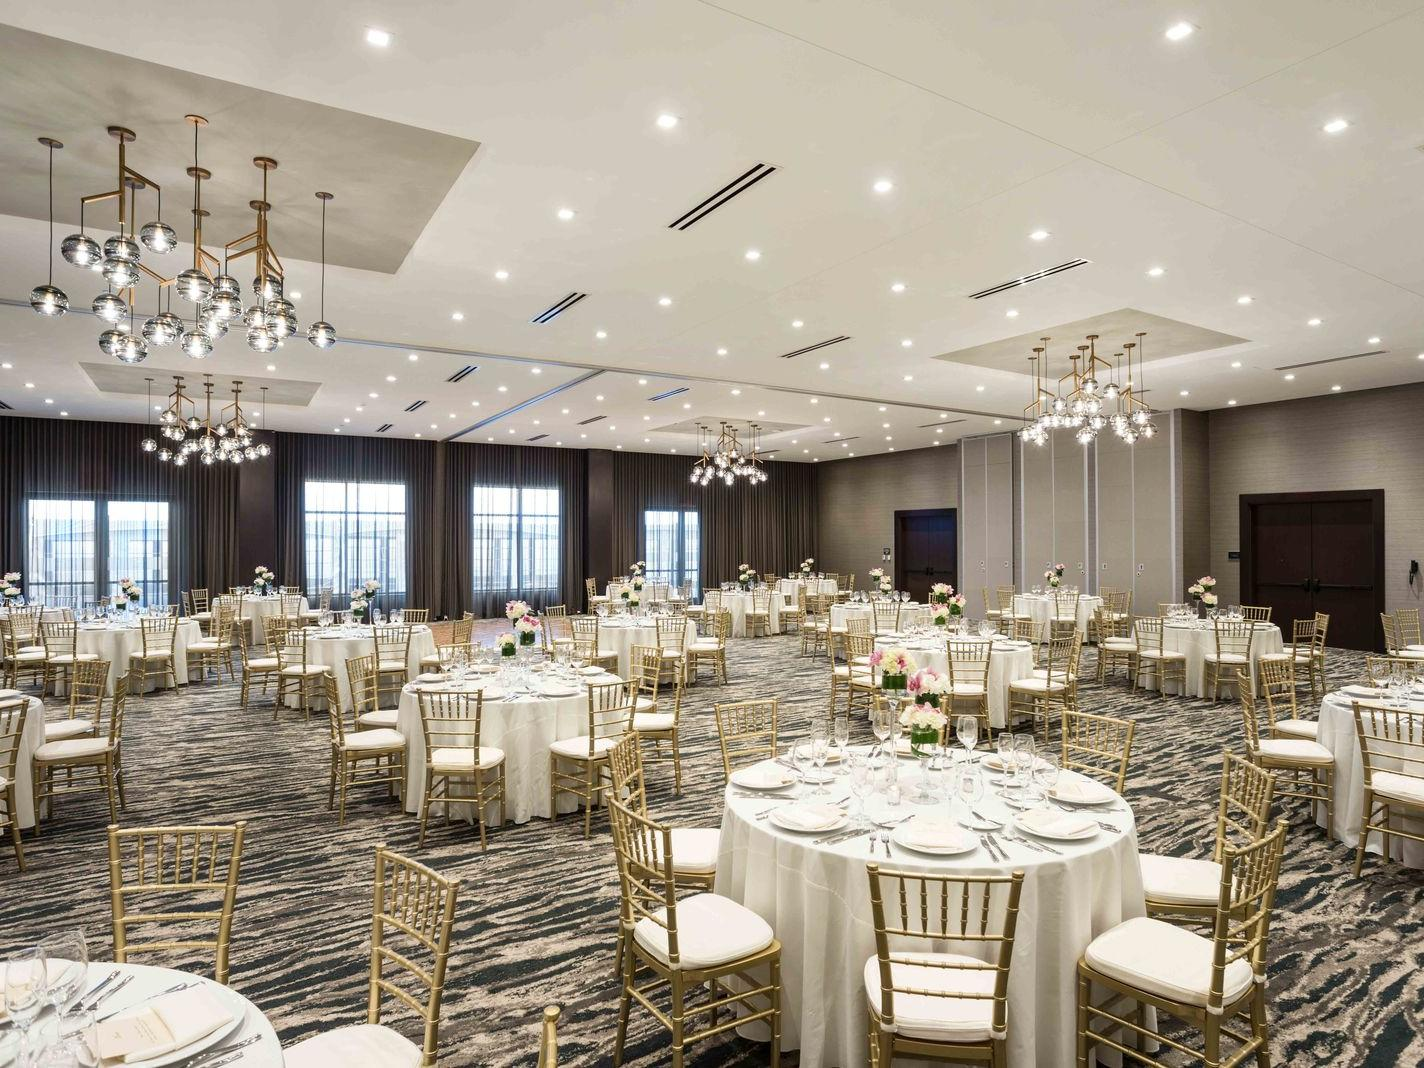 spacious event venue with round tables